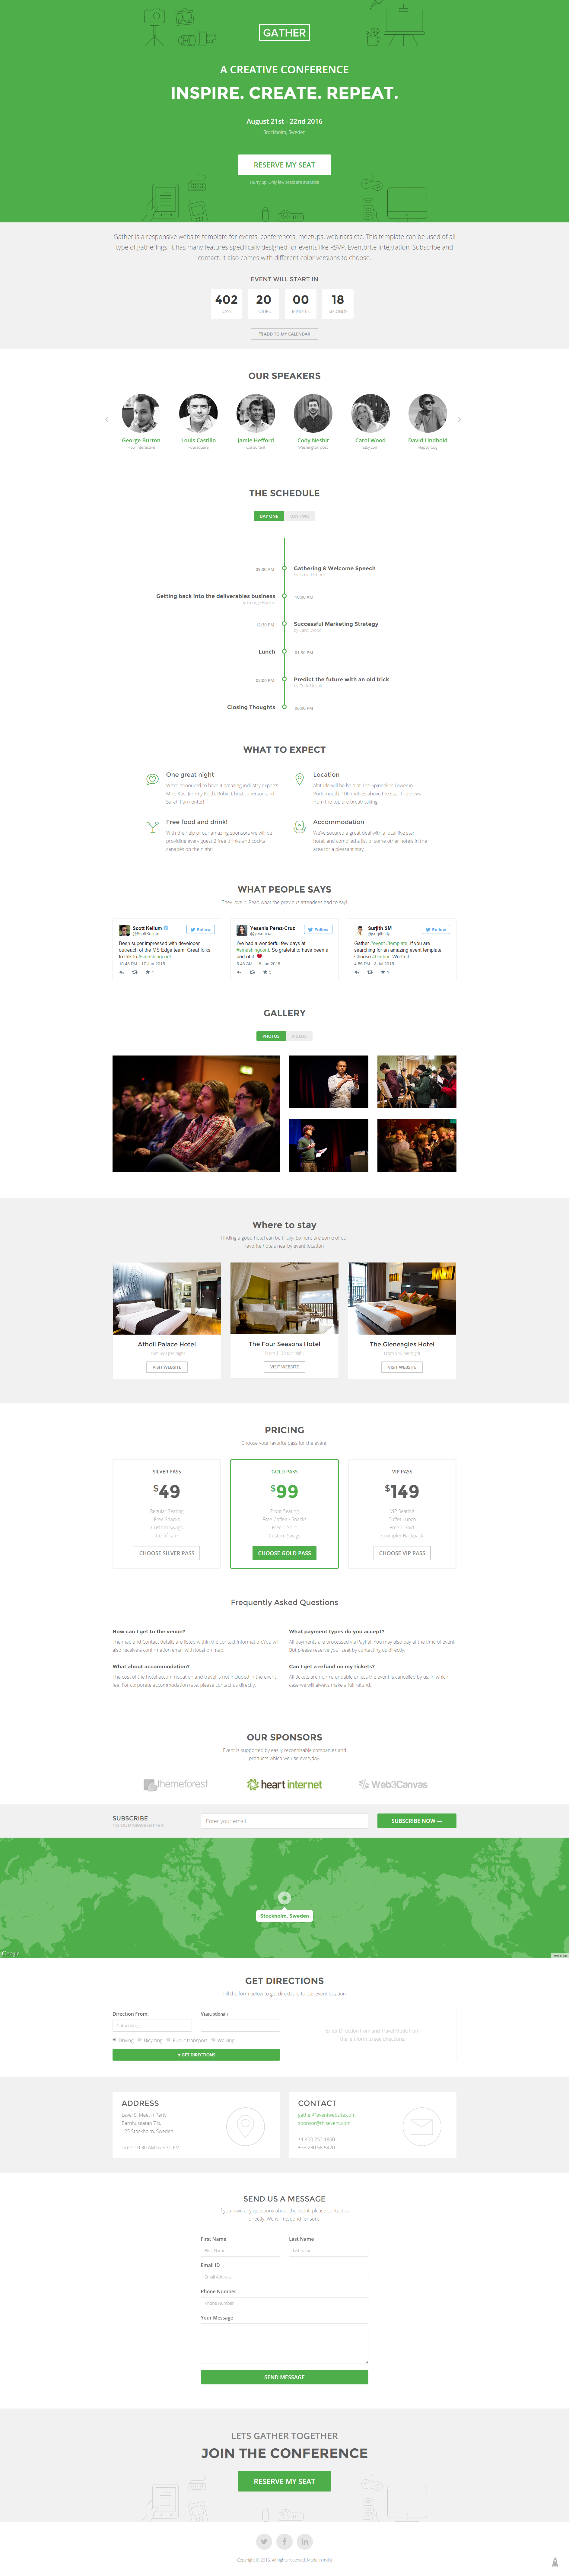 Event Landing Page Template Gather